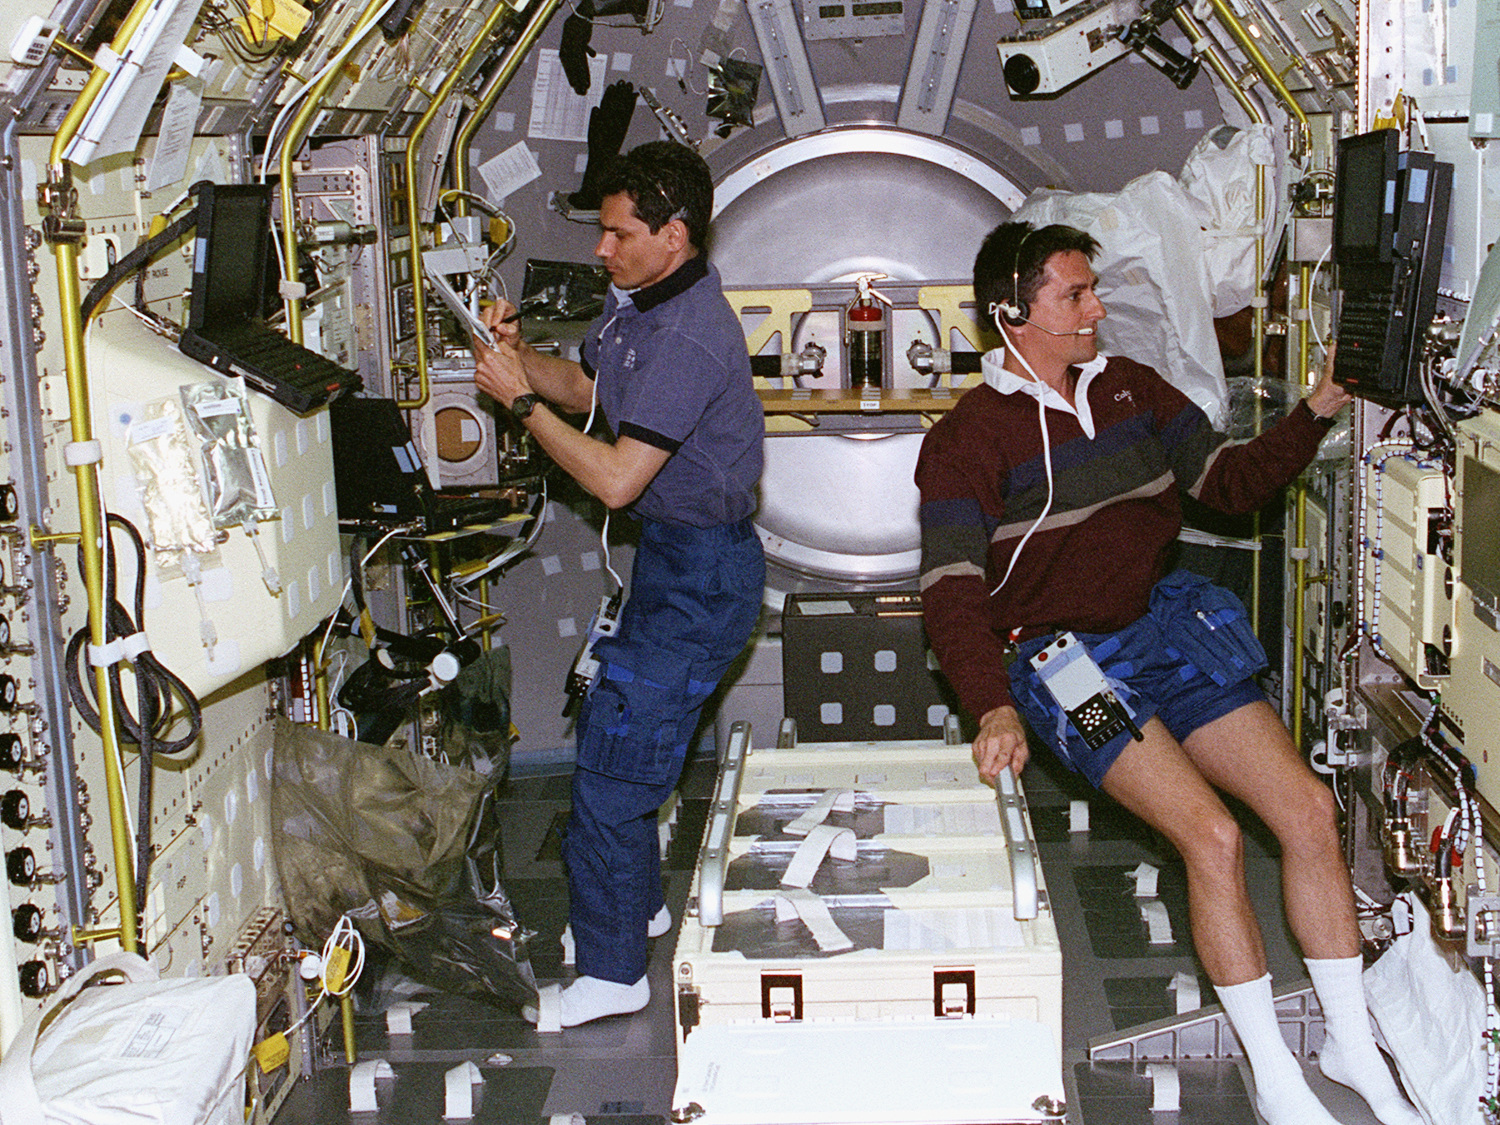 Working with Greg Linteris in the Spacelab module.